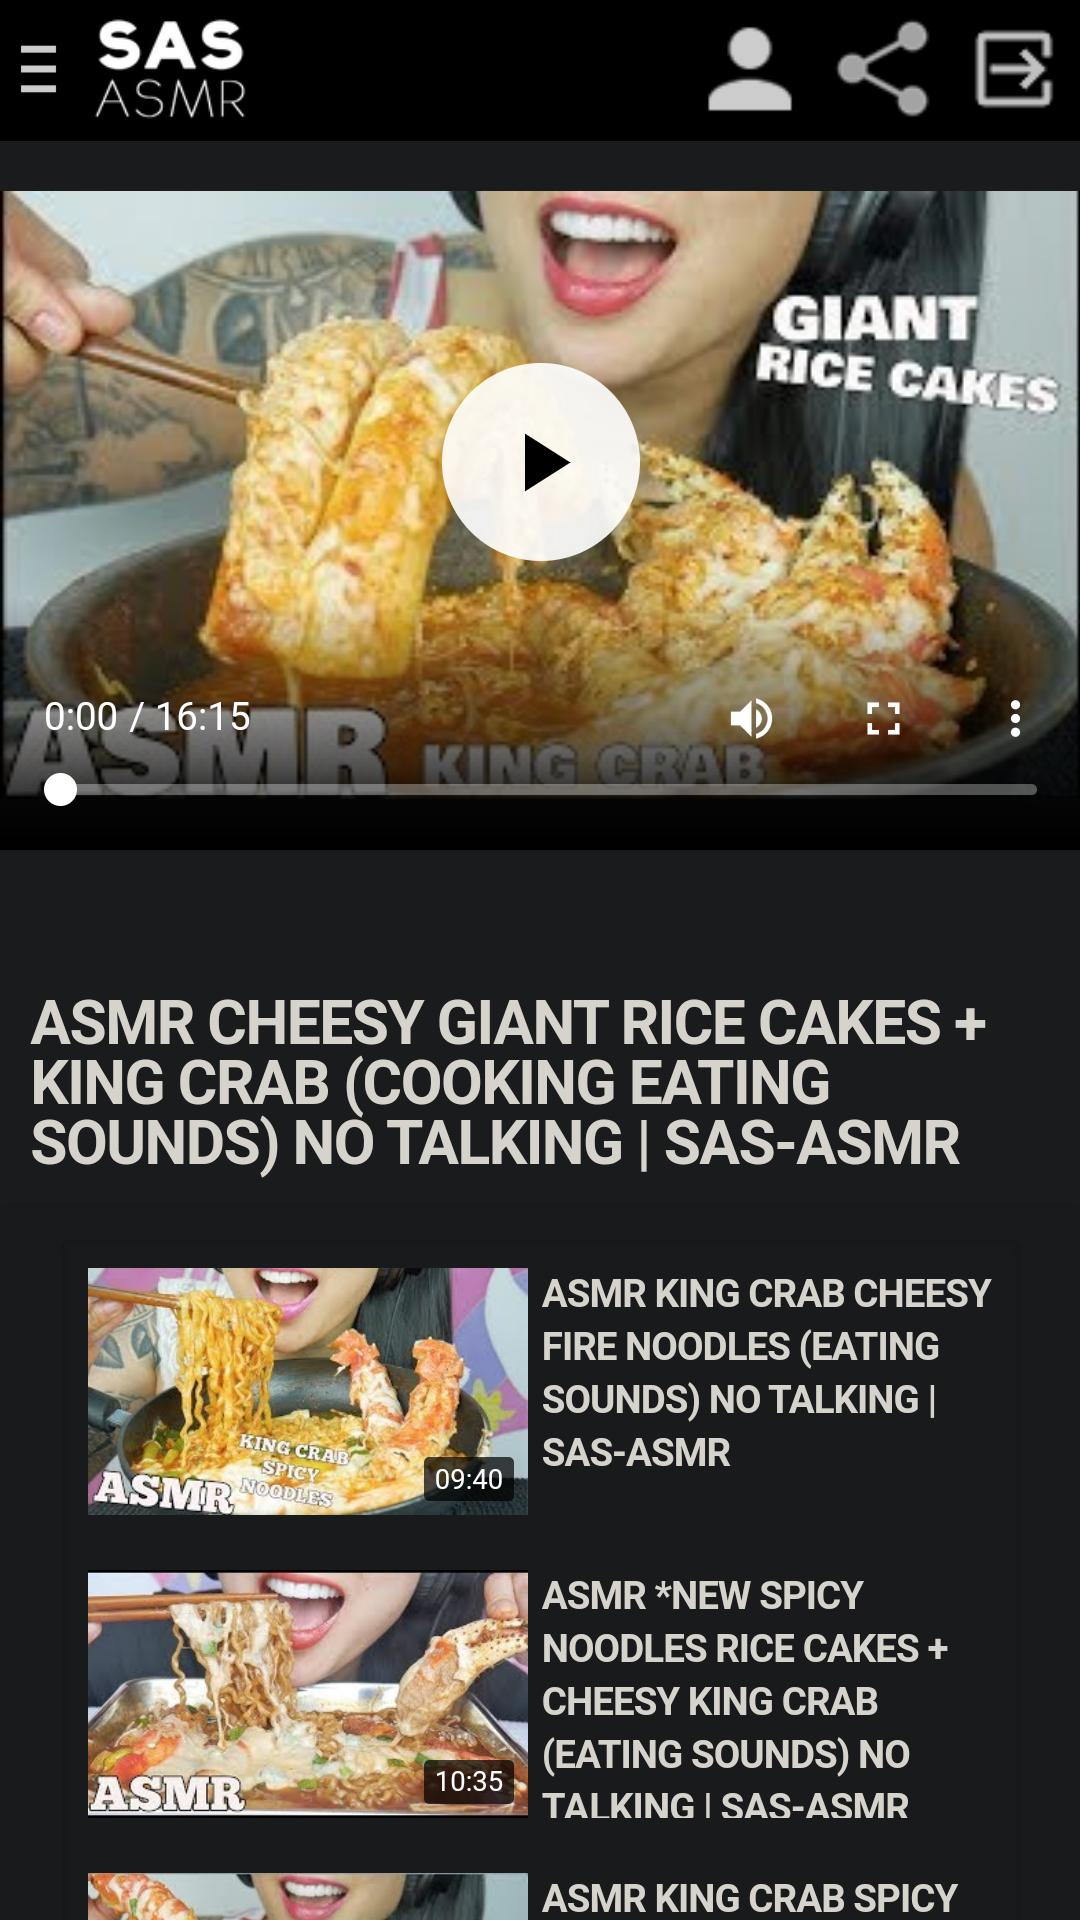 Sas Asmr For Android Apk Download Thank you.***asmr (autonomous sensory meridian response) is a euphoric experience identified by a tingling sensation that triggers positive feelings listening to whisper voice and eating sounds are some examples that trigger asmr. sas asmr for android apk download